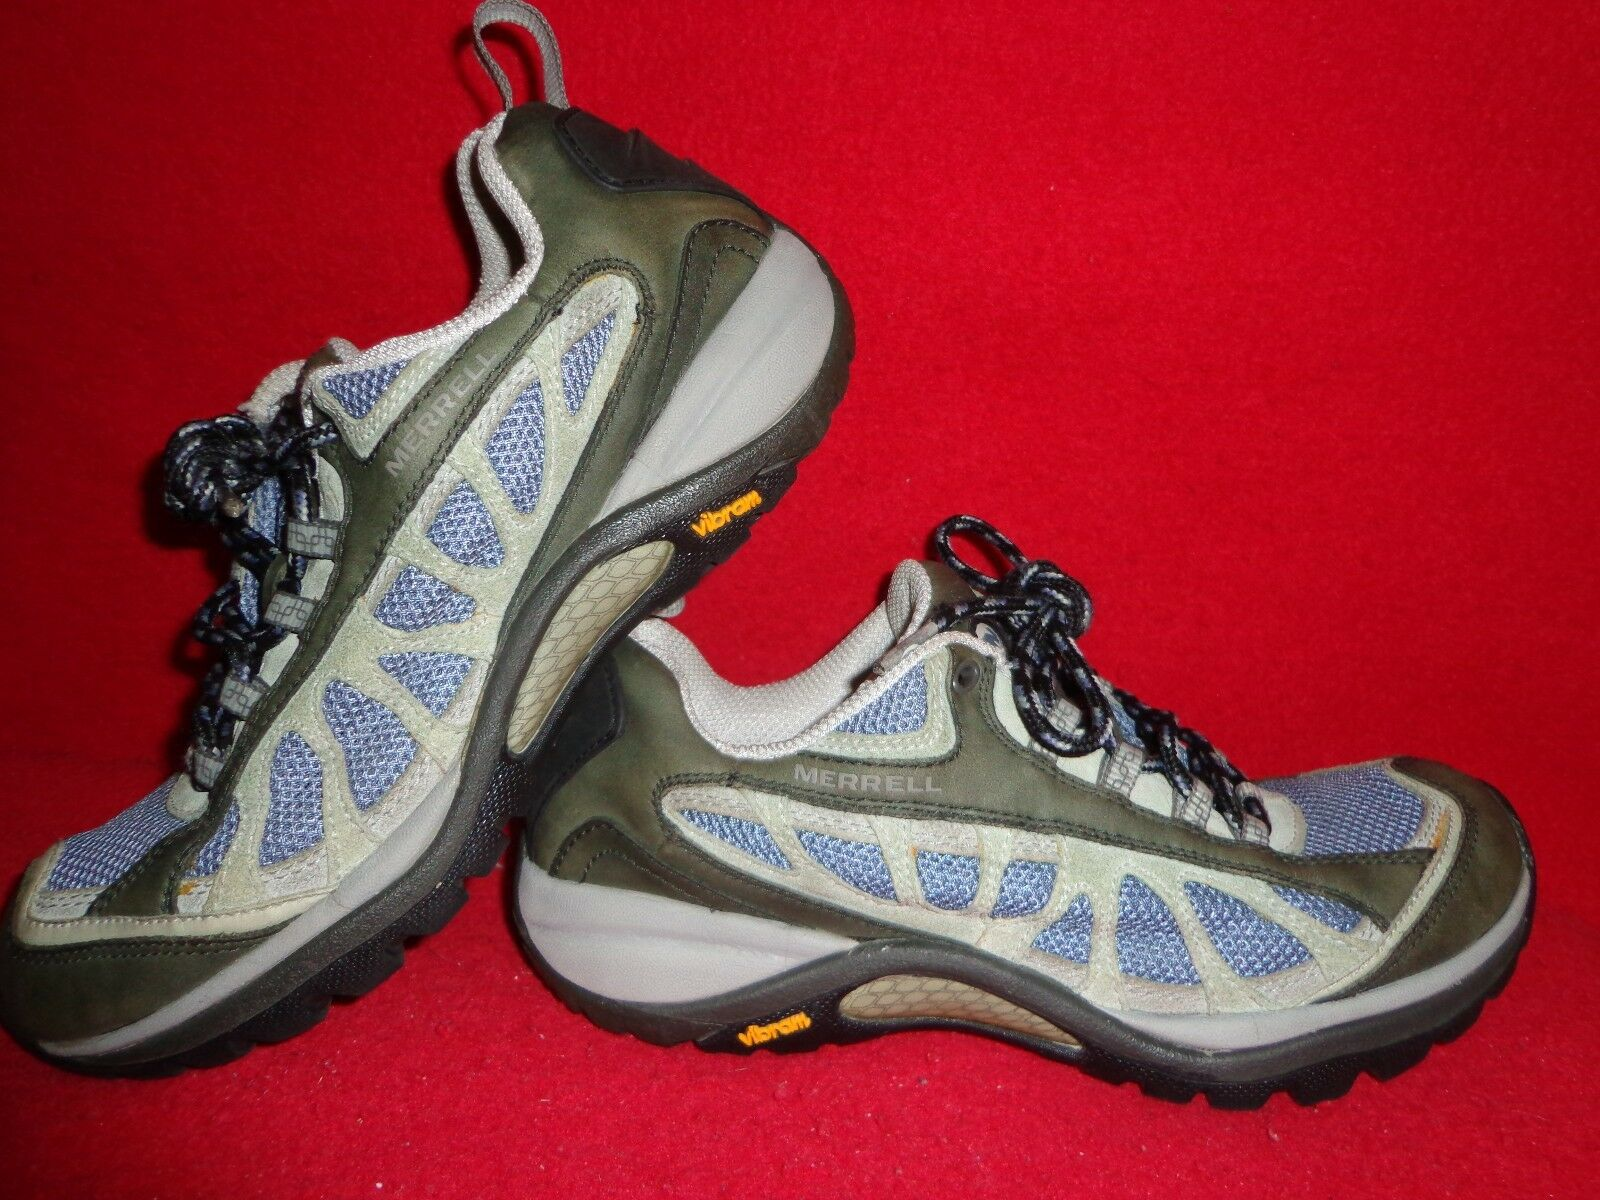 Merrell Form Air Cushion Athletic Women's shoes Multi-color Size 7.5